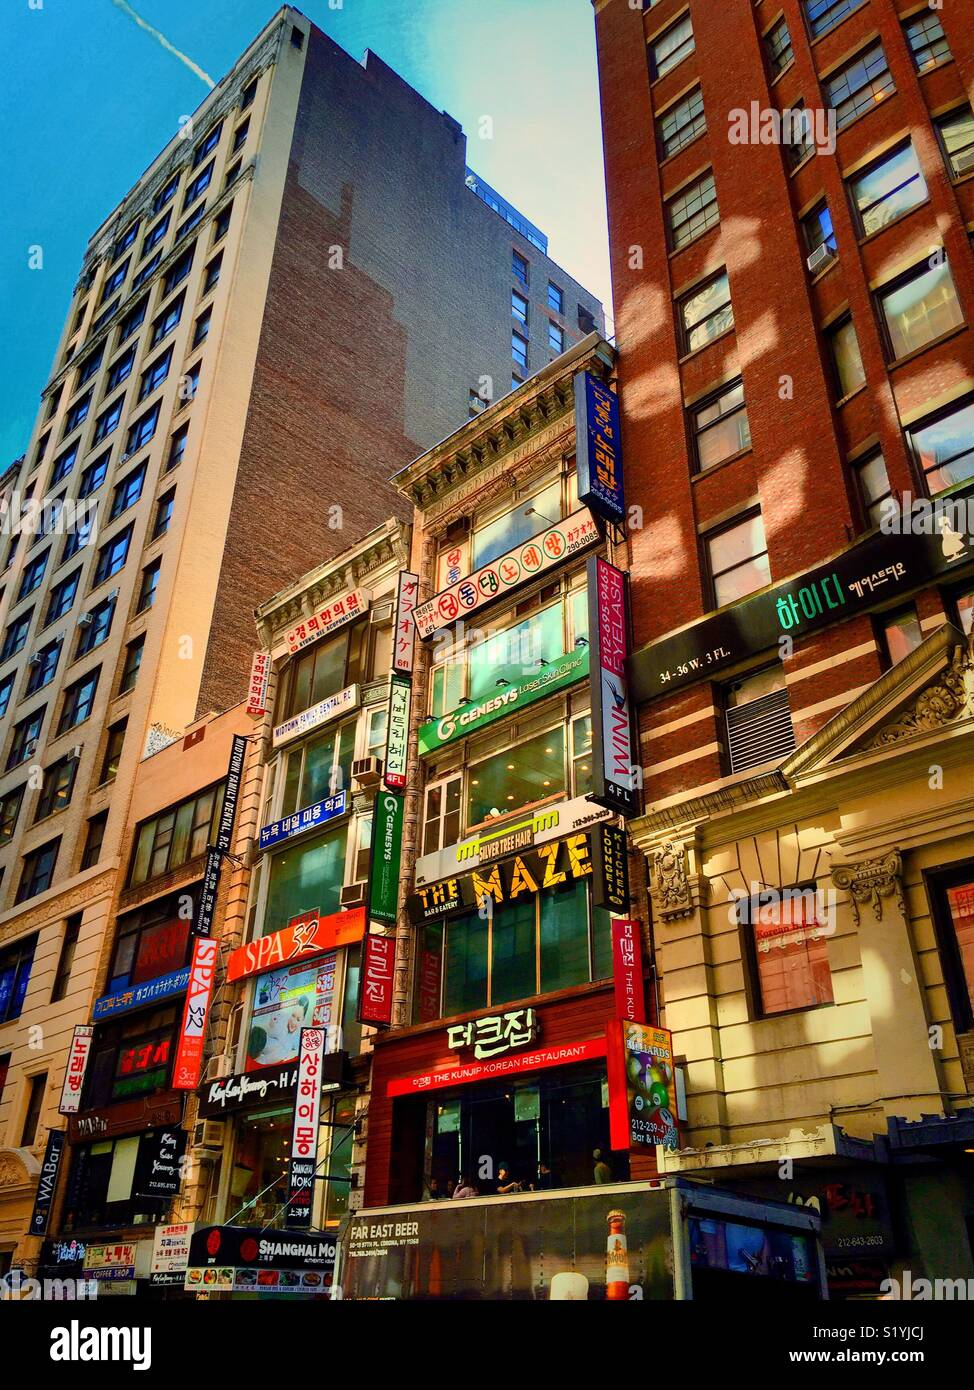 Brightly colored storefronts with multi lingual signage in Koreatown, W. 32nd St., New York City, USA - Stock Image